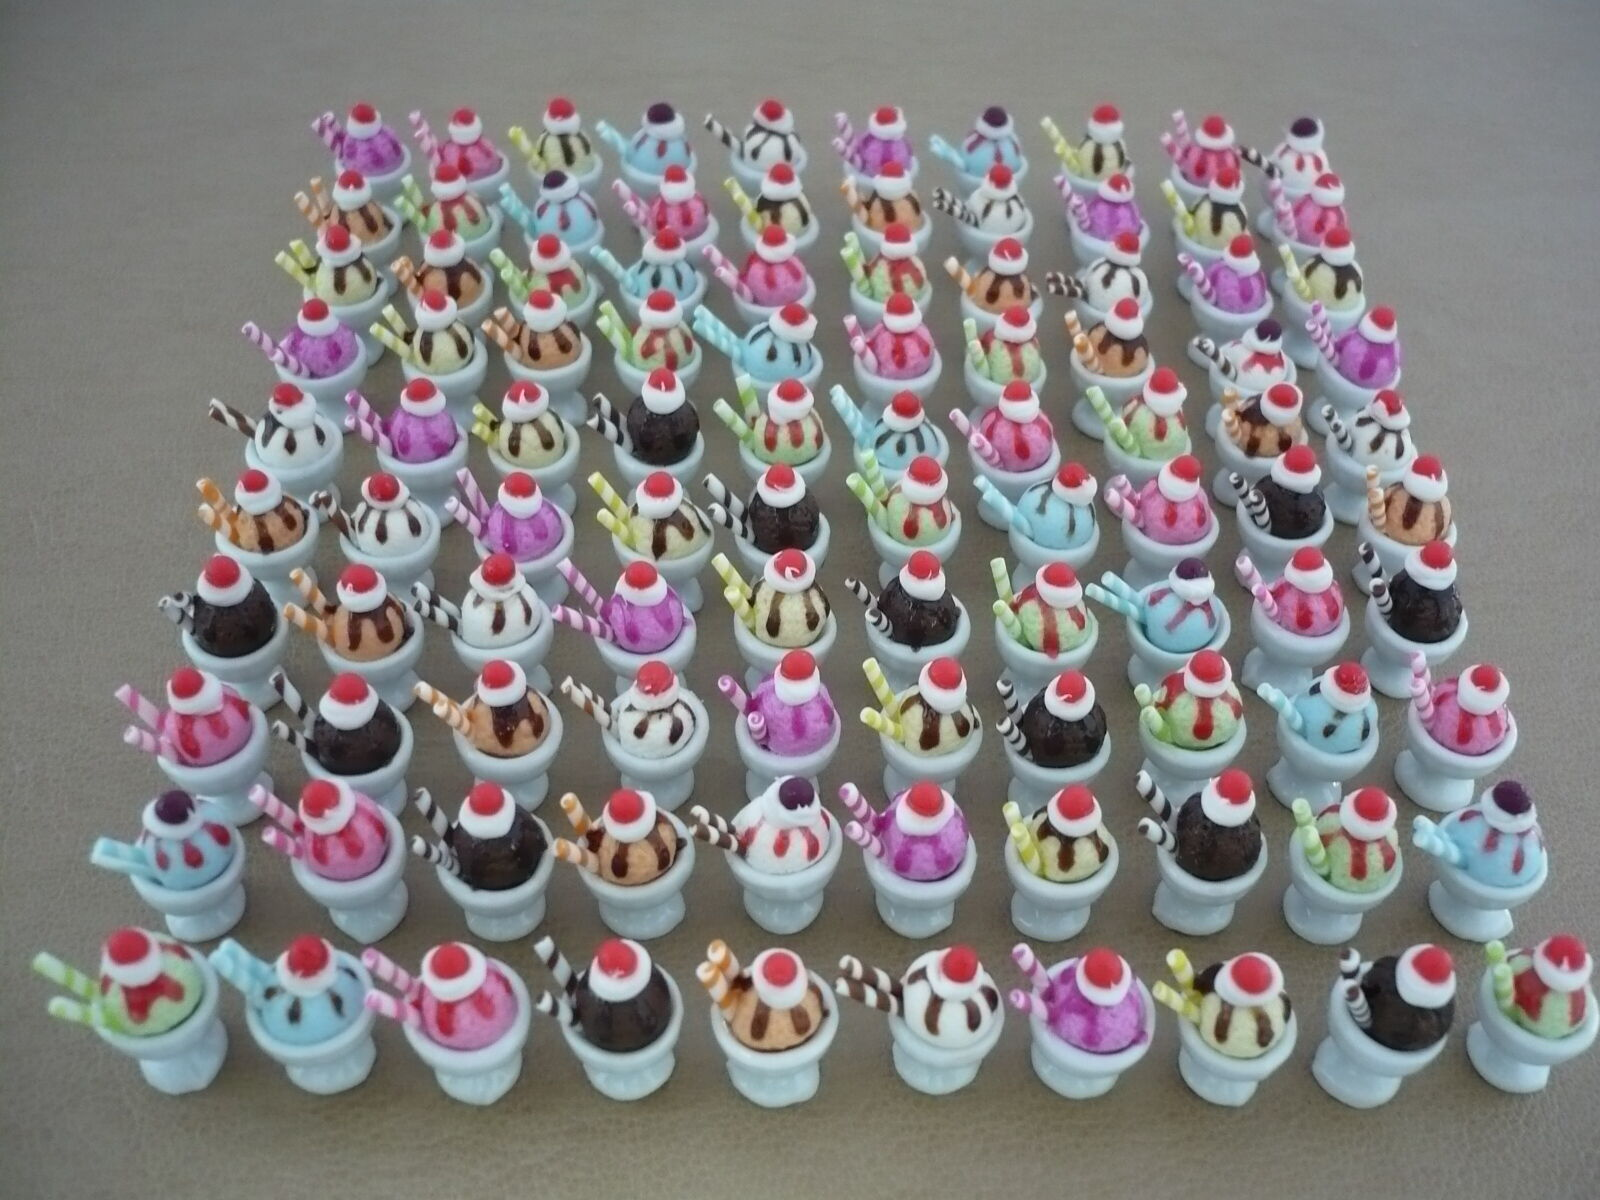 100 Mix Mix Mix Ice-Cream Sundae Cup Dollhouse Miniatures Food Supply Deco 0657ad